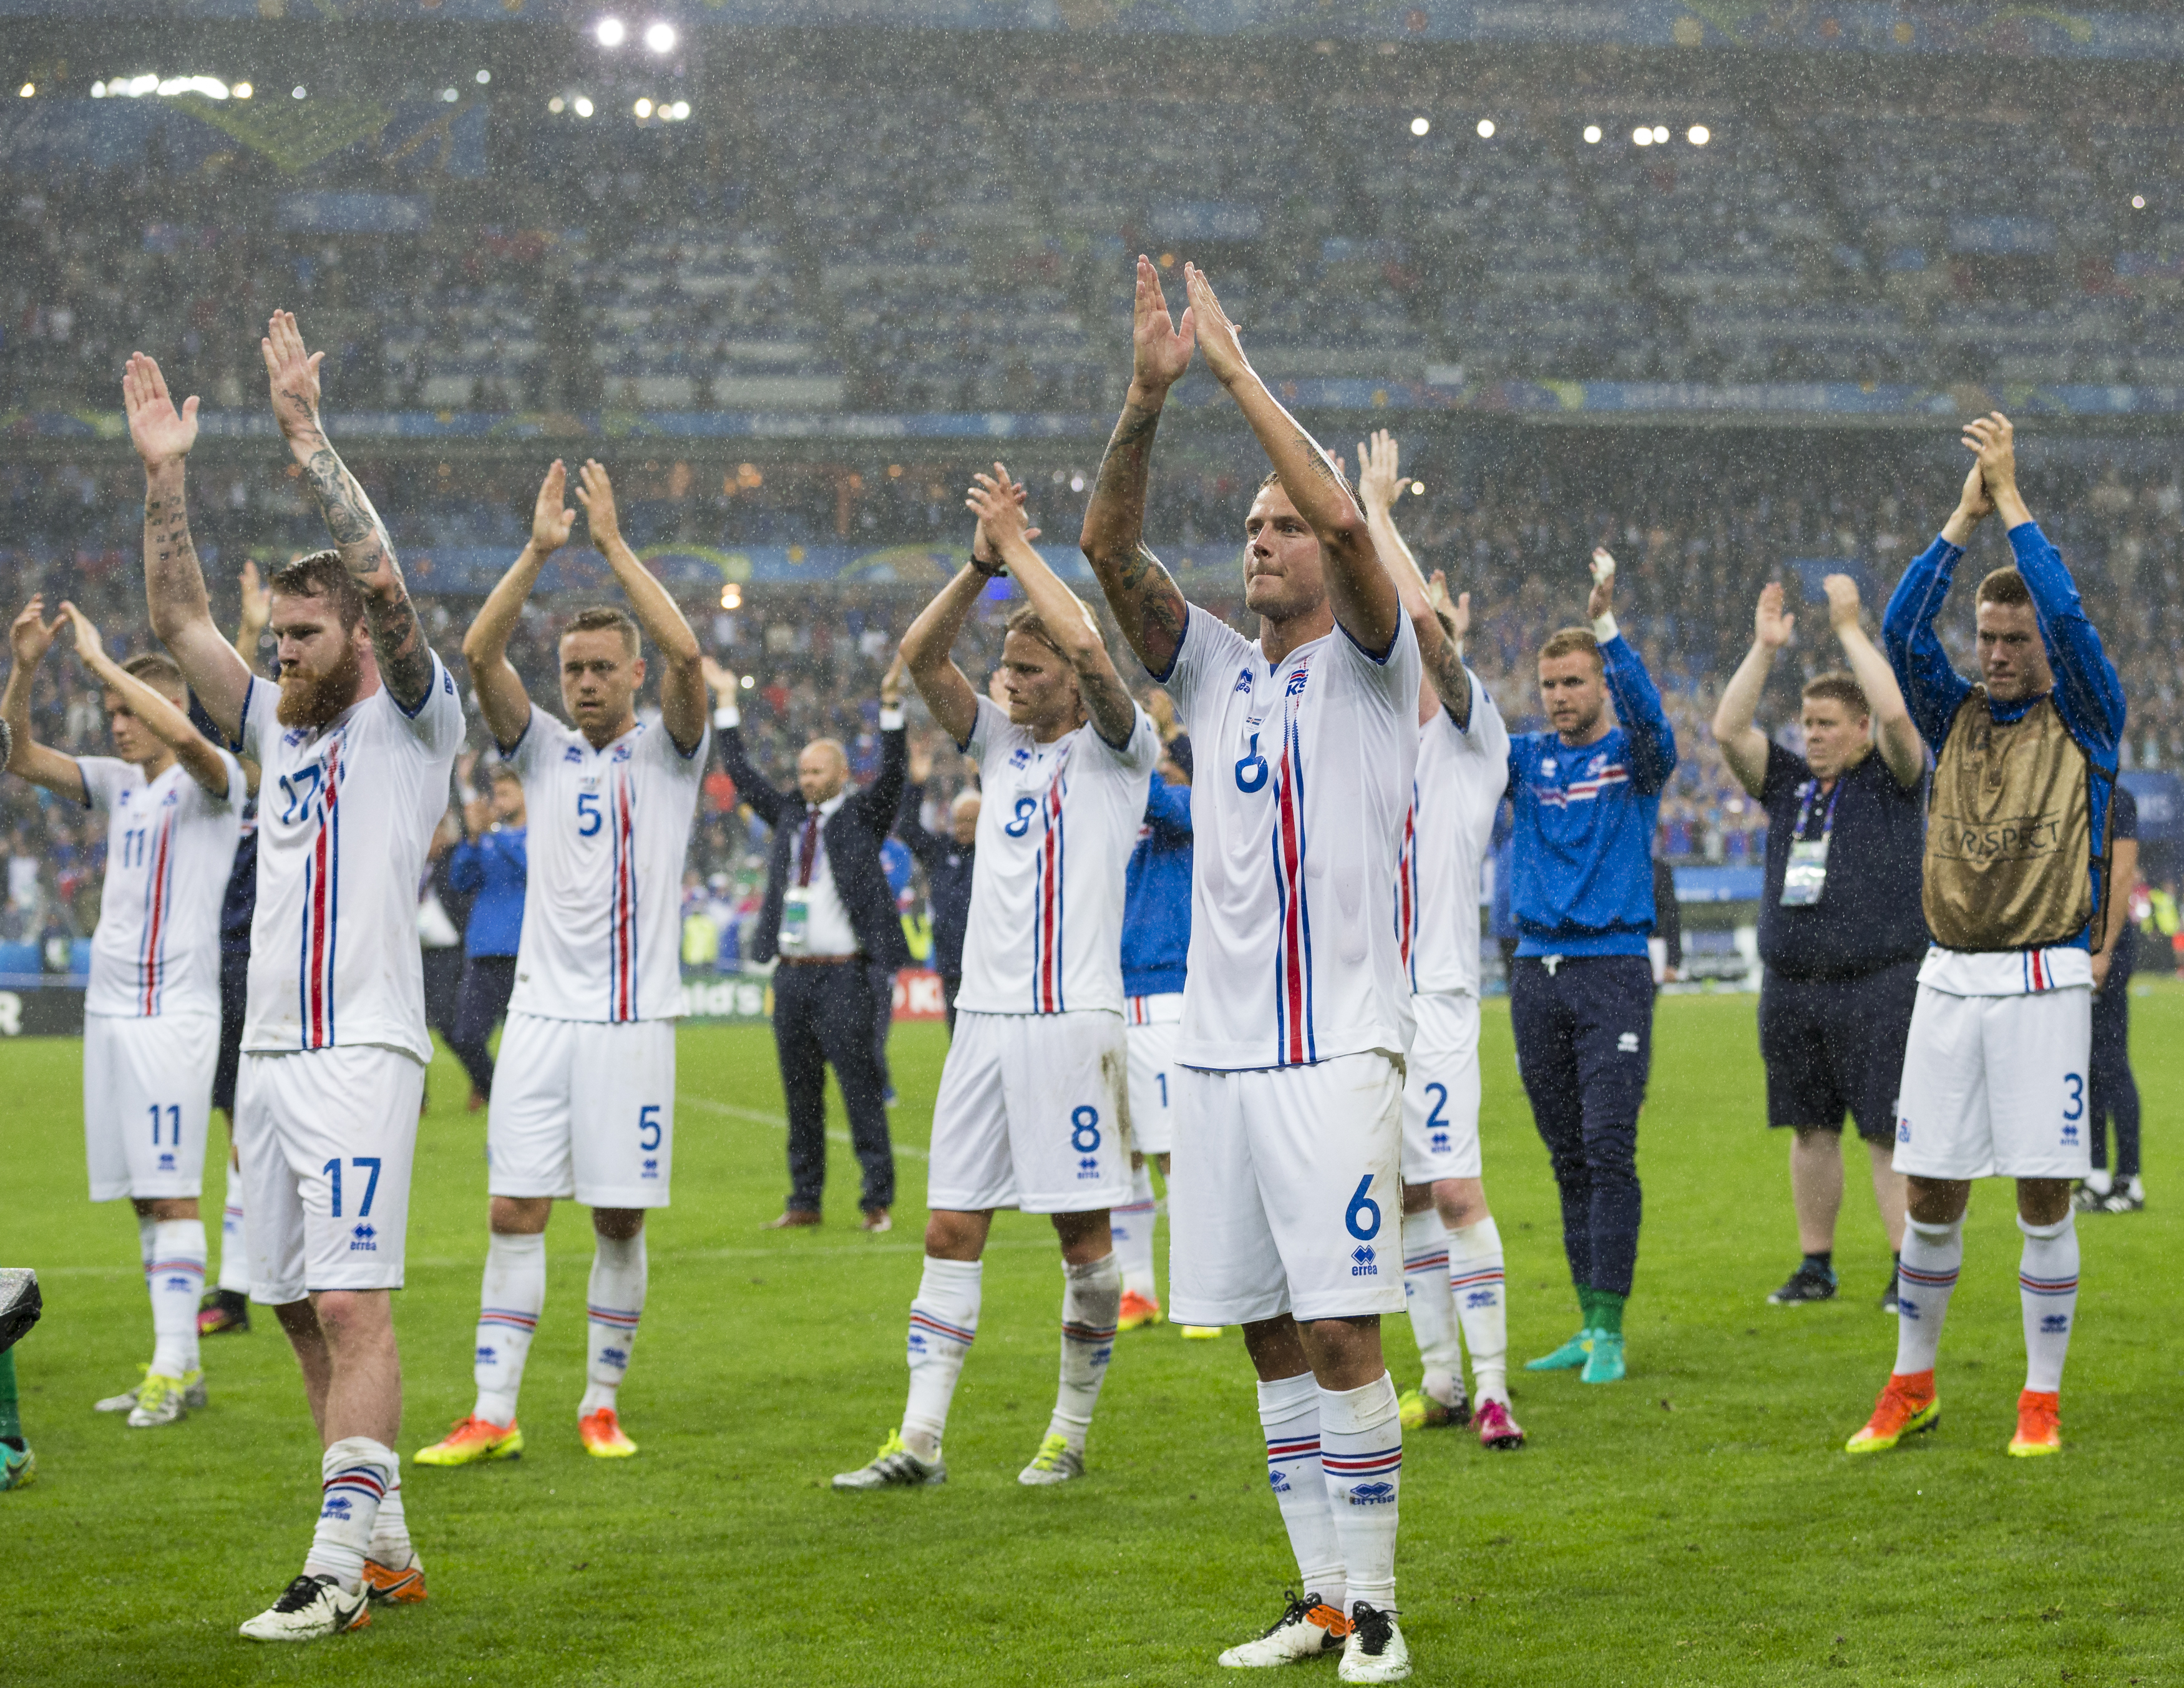 PARIS, FRANCE - JULY 03: Iceland players applaud their fans at the end of the match during the UEFA Euro 2016 Quarter-final match between France and Iceland at on July 03 in Paris, France. (Photo by Craig Mercer/CameraSport via Getty Images)